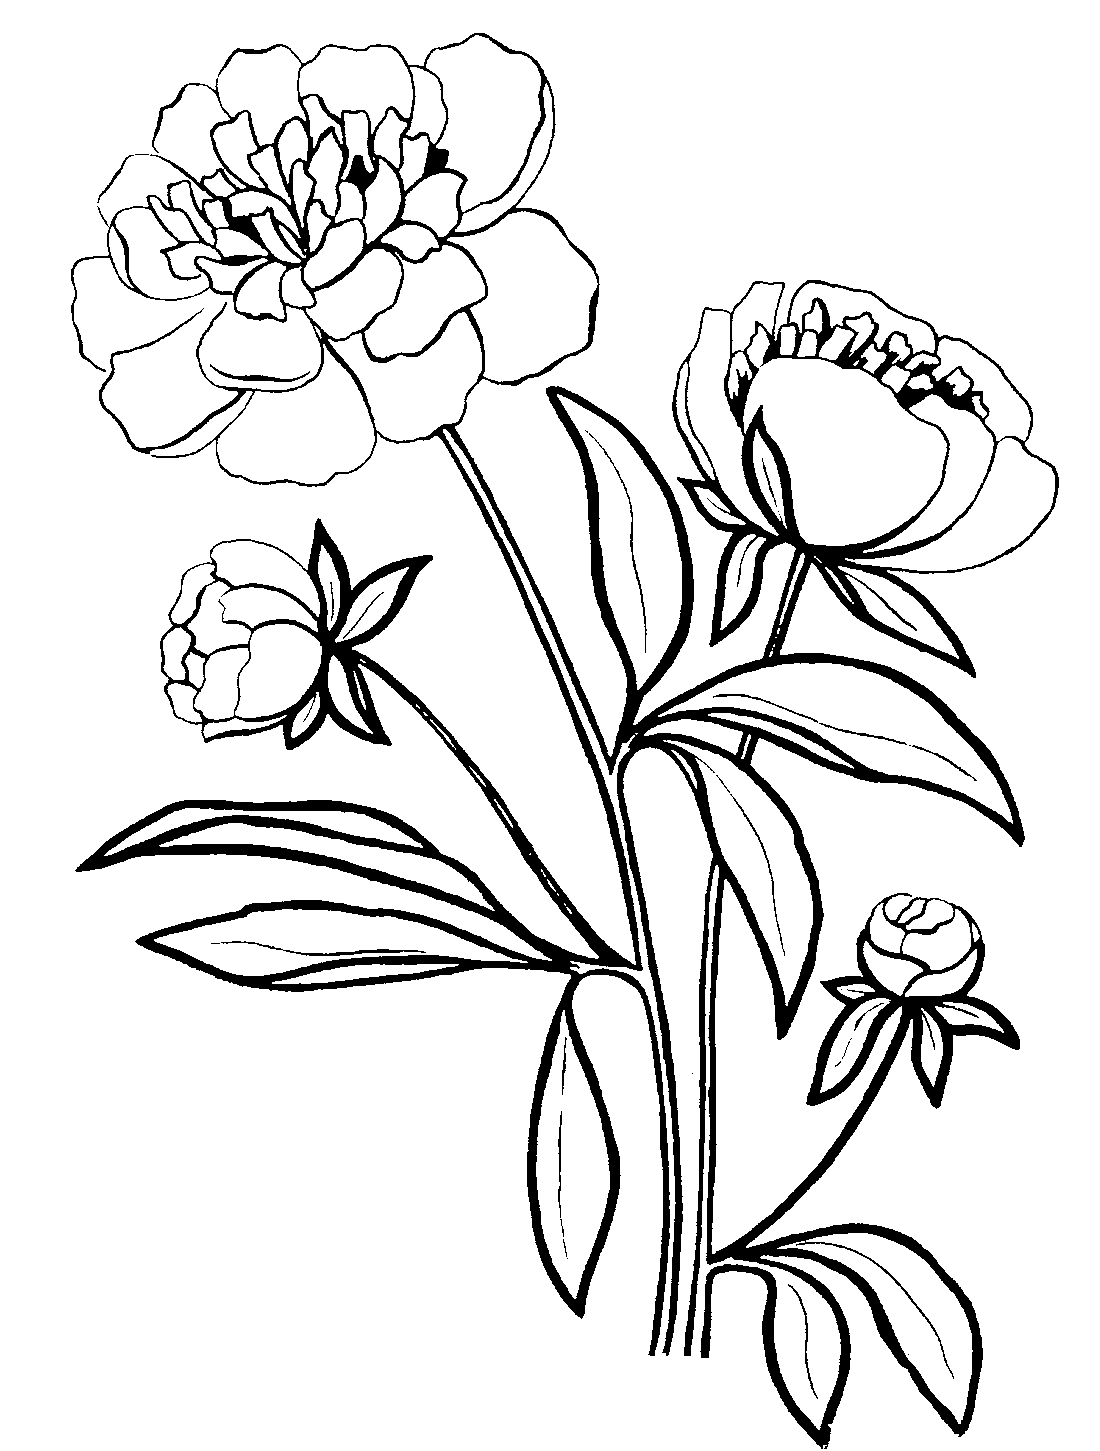 coloring pages sites - photo#7